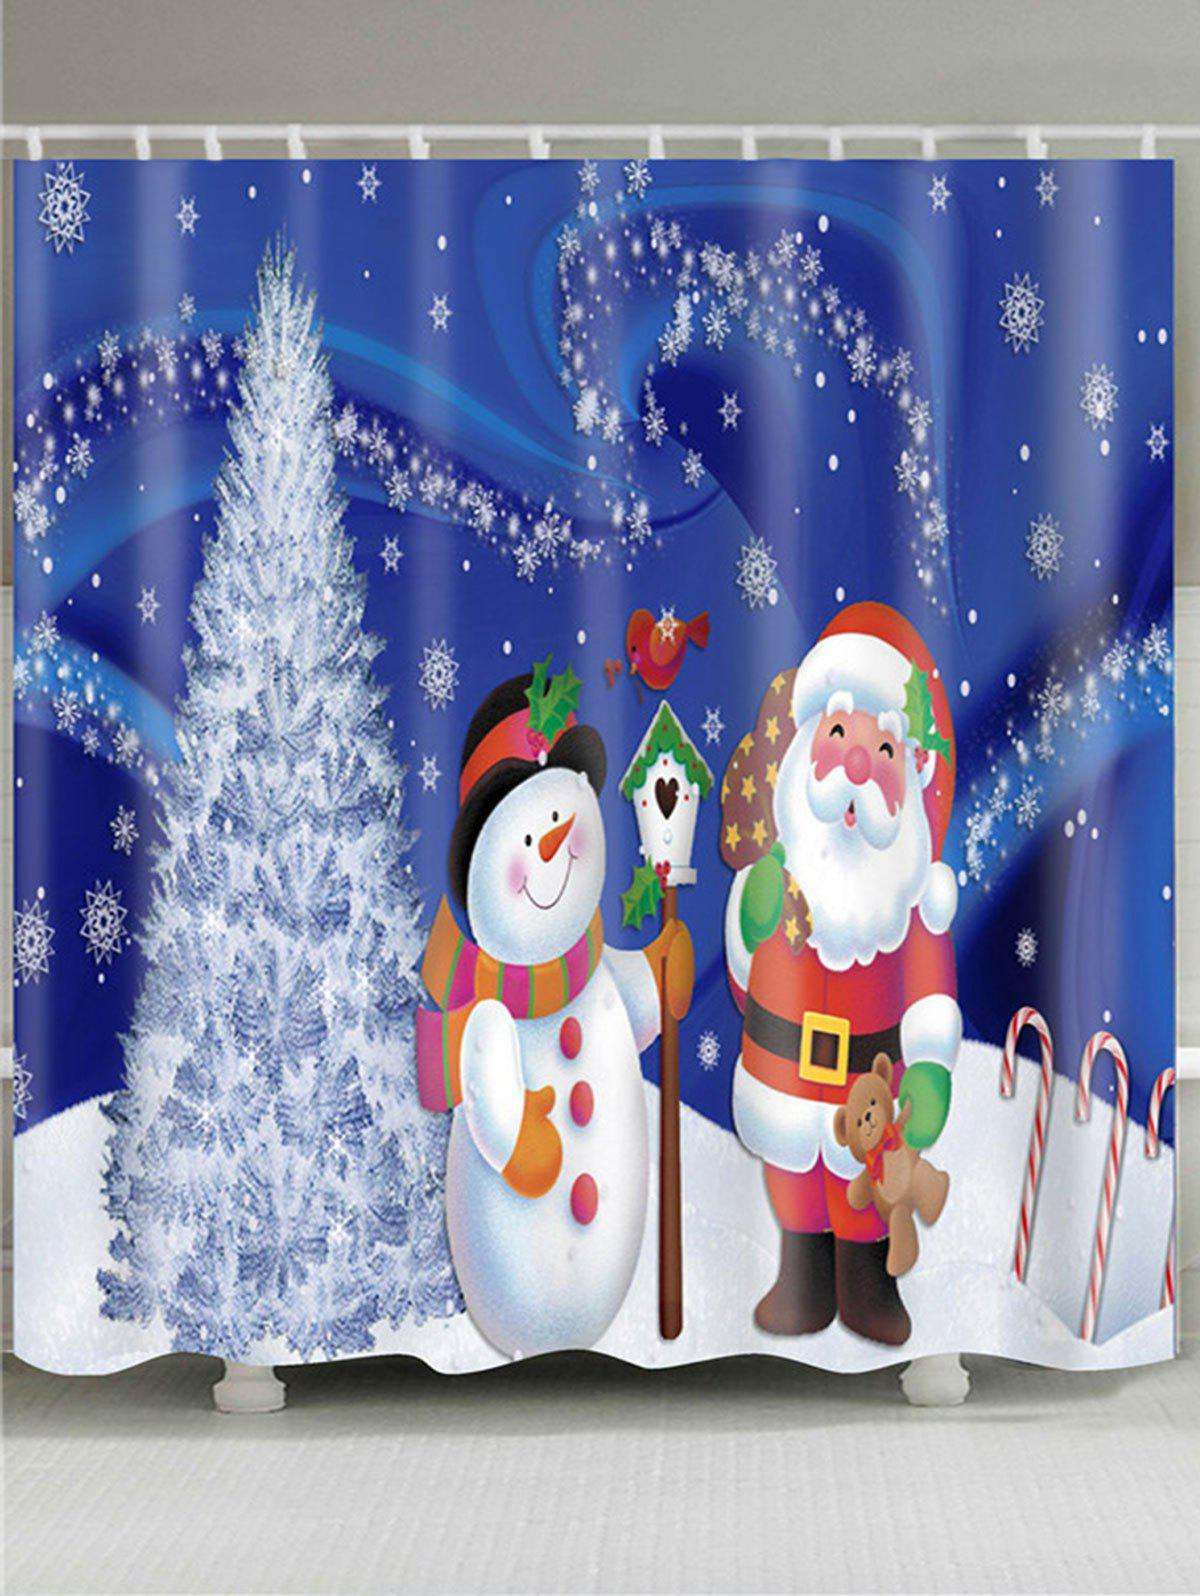 Christmas Tree Snowman Santa Claus Patterned Bath CurtainHOME<br><br>Size: W71 INCH * L71 INCH; Color: COLORFUL; Products Type: Shower Curtains; Materials: Polyester; Pattern: Christmas Tree,Santa Claus,Snowman; Style: Festival; Number of Hook Holes: W59 inch * L71 inch:10, W65 inch * L71 inch:12, W71 inch * L71 inch:12, W71 inch * L79 inch:12, W79 inch * L71 inch:12; Package Contents: 1 x Shower Curtain 1 x Hooks (Set);